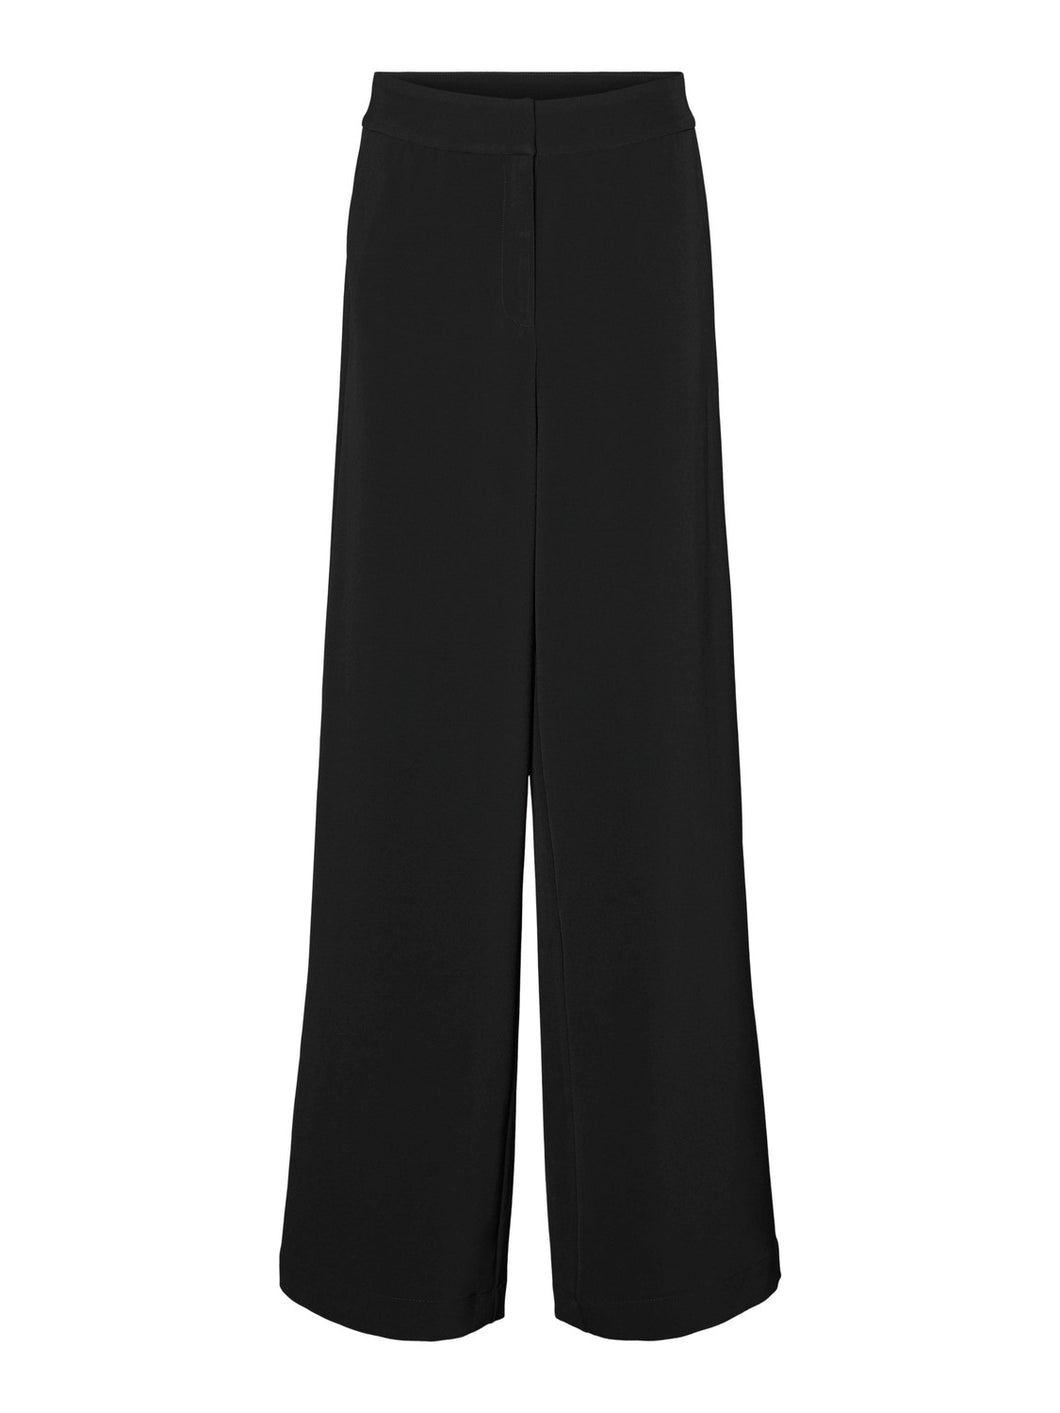 Cameron High Waisted Wide Leg Trousers - Black